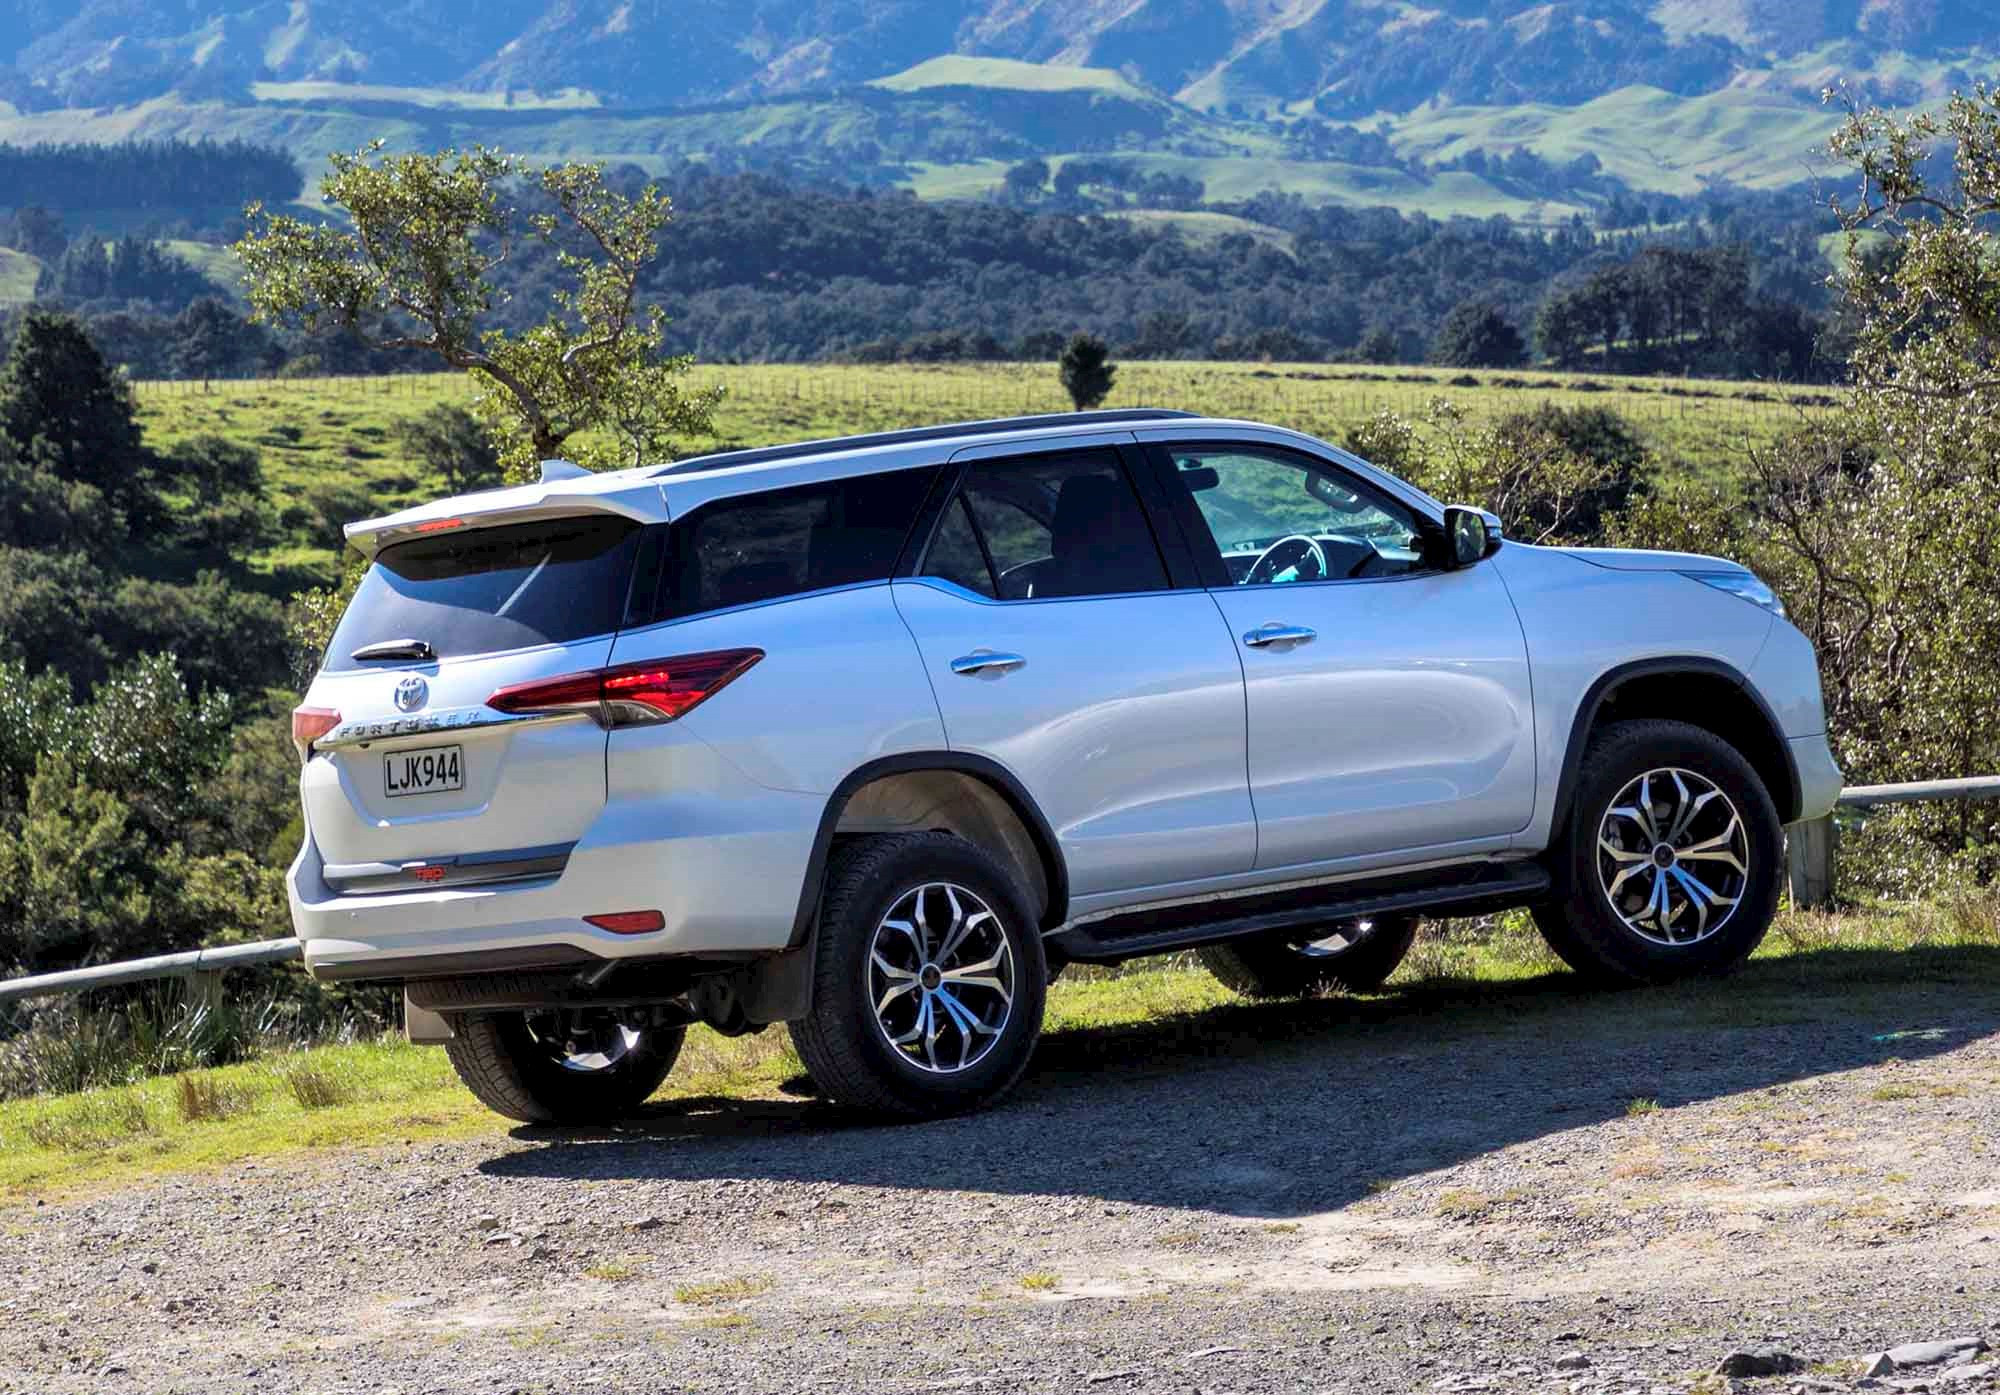 Download Image - New Interior Toyota Fortuner 2018 , HD Wallpaper & Backgrounds